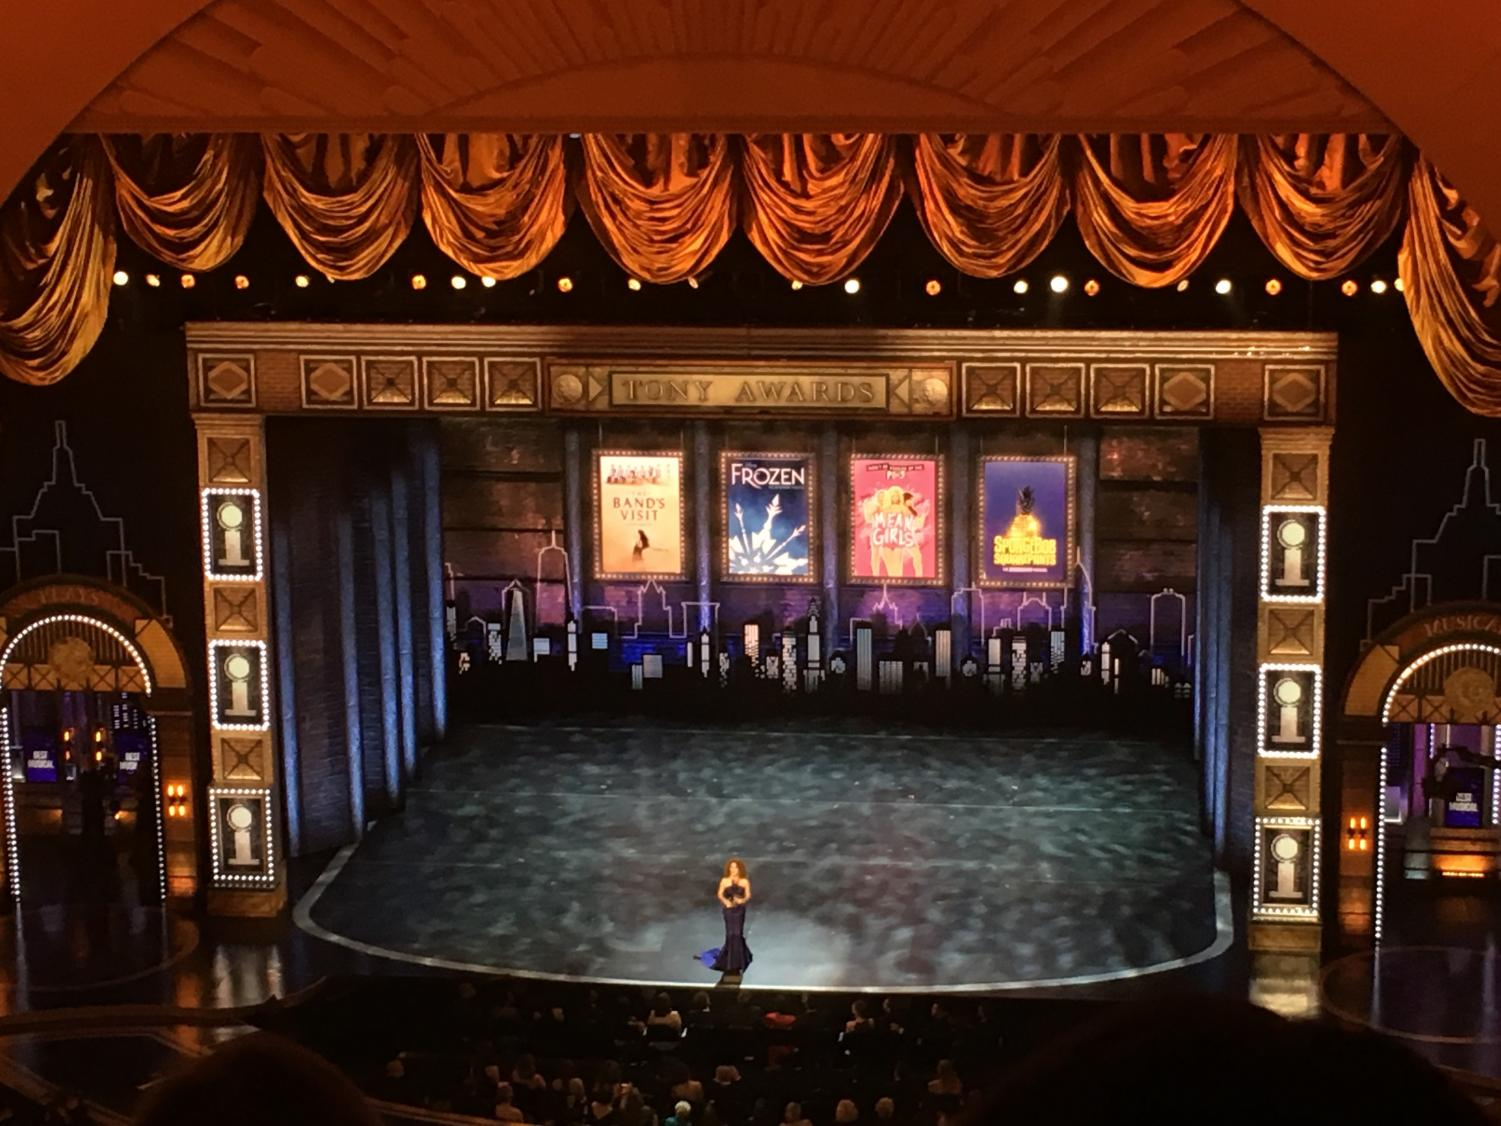 The 2019 Tony Awards will be airing on Sunday, June 9, at 8 p.m. Pascack Valley junior Jason Leibfriend breaks down each award and predicts the winners for each category.